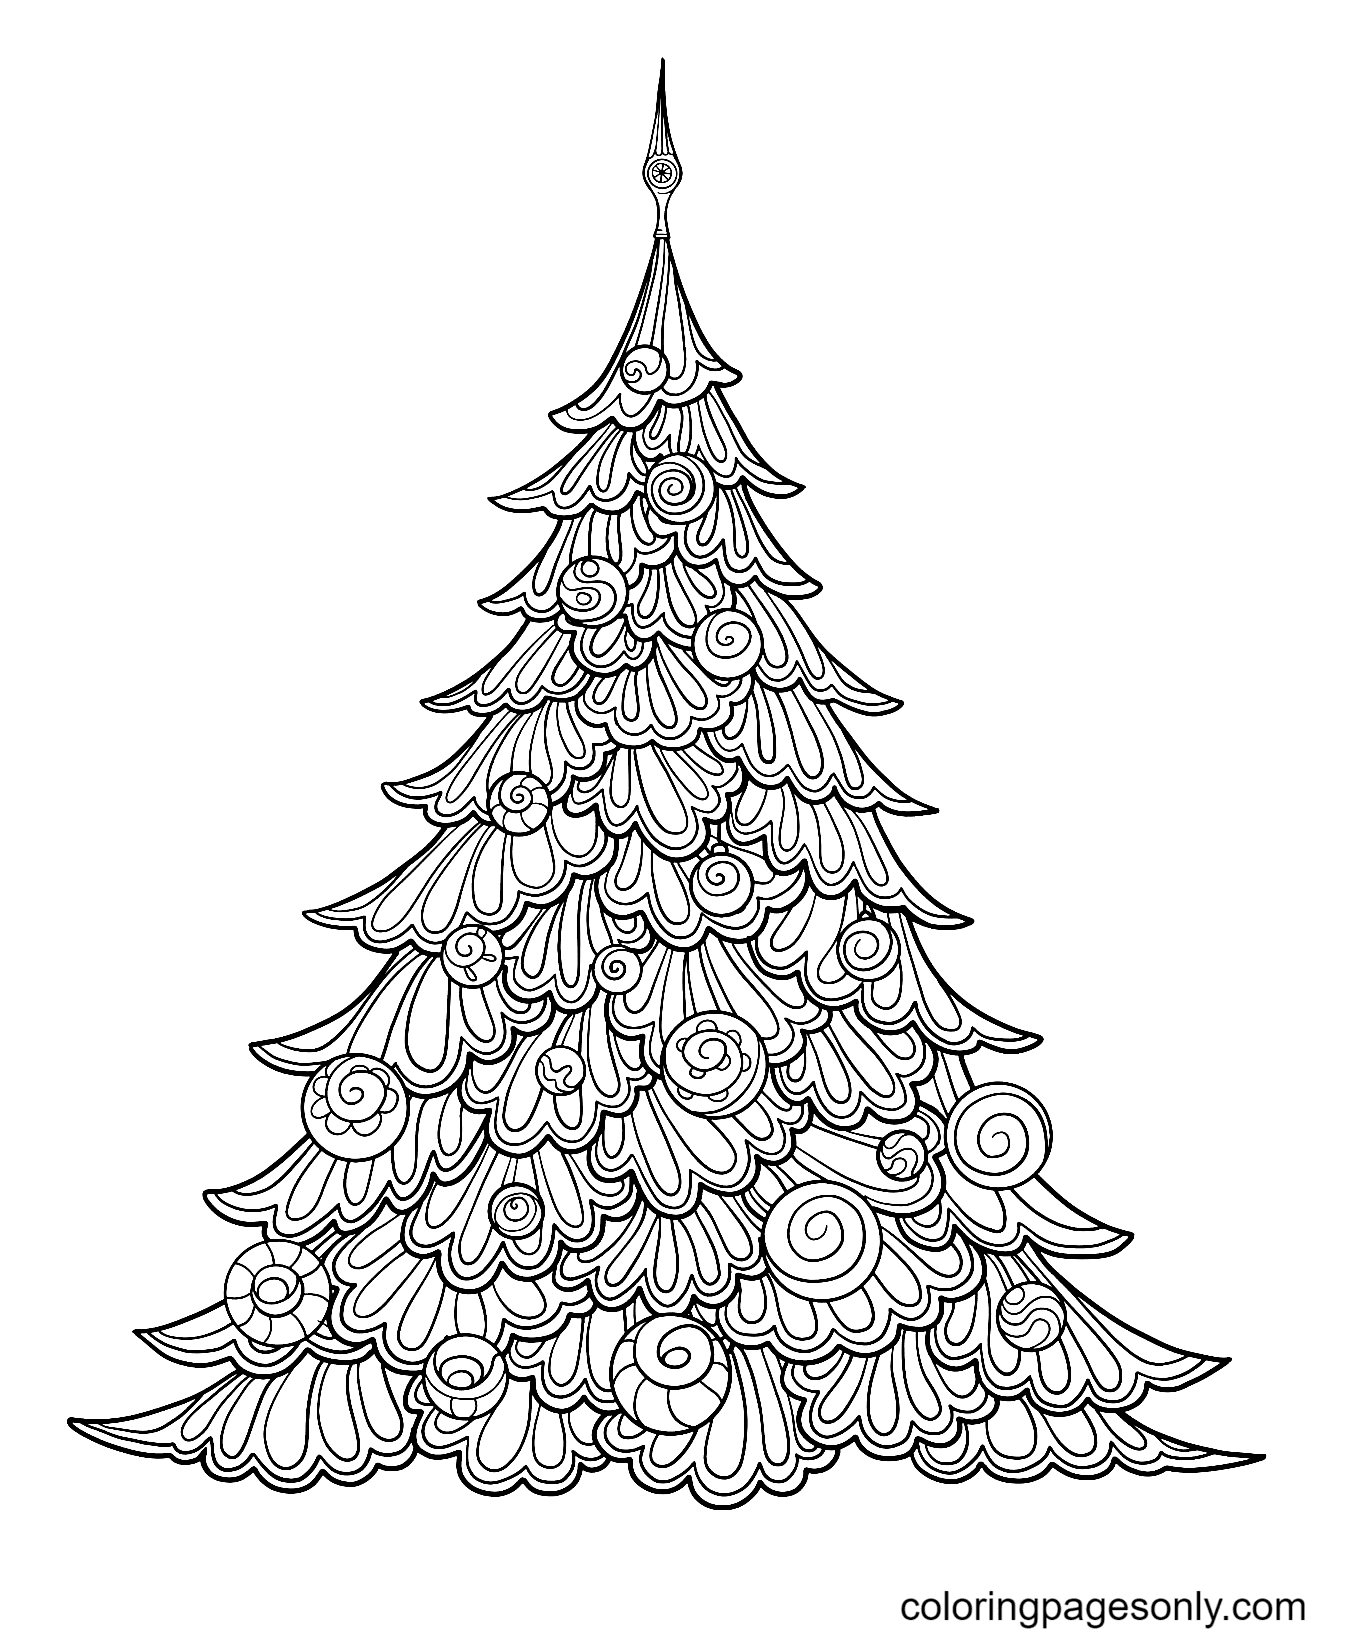 Beautiful Christmas Tree with Swirls Coloring Page